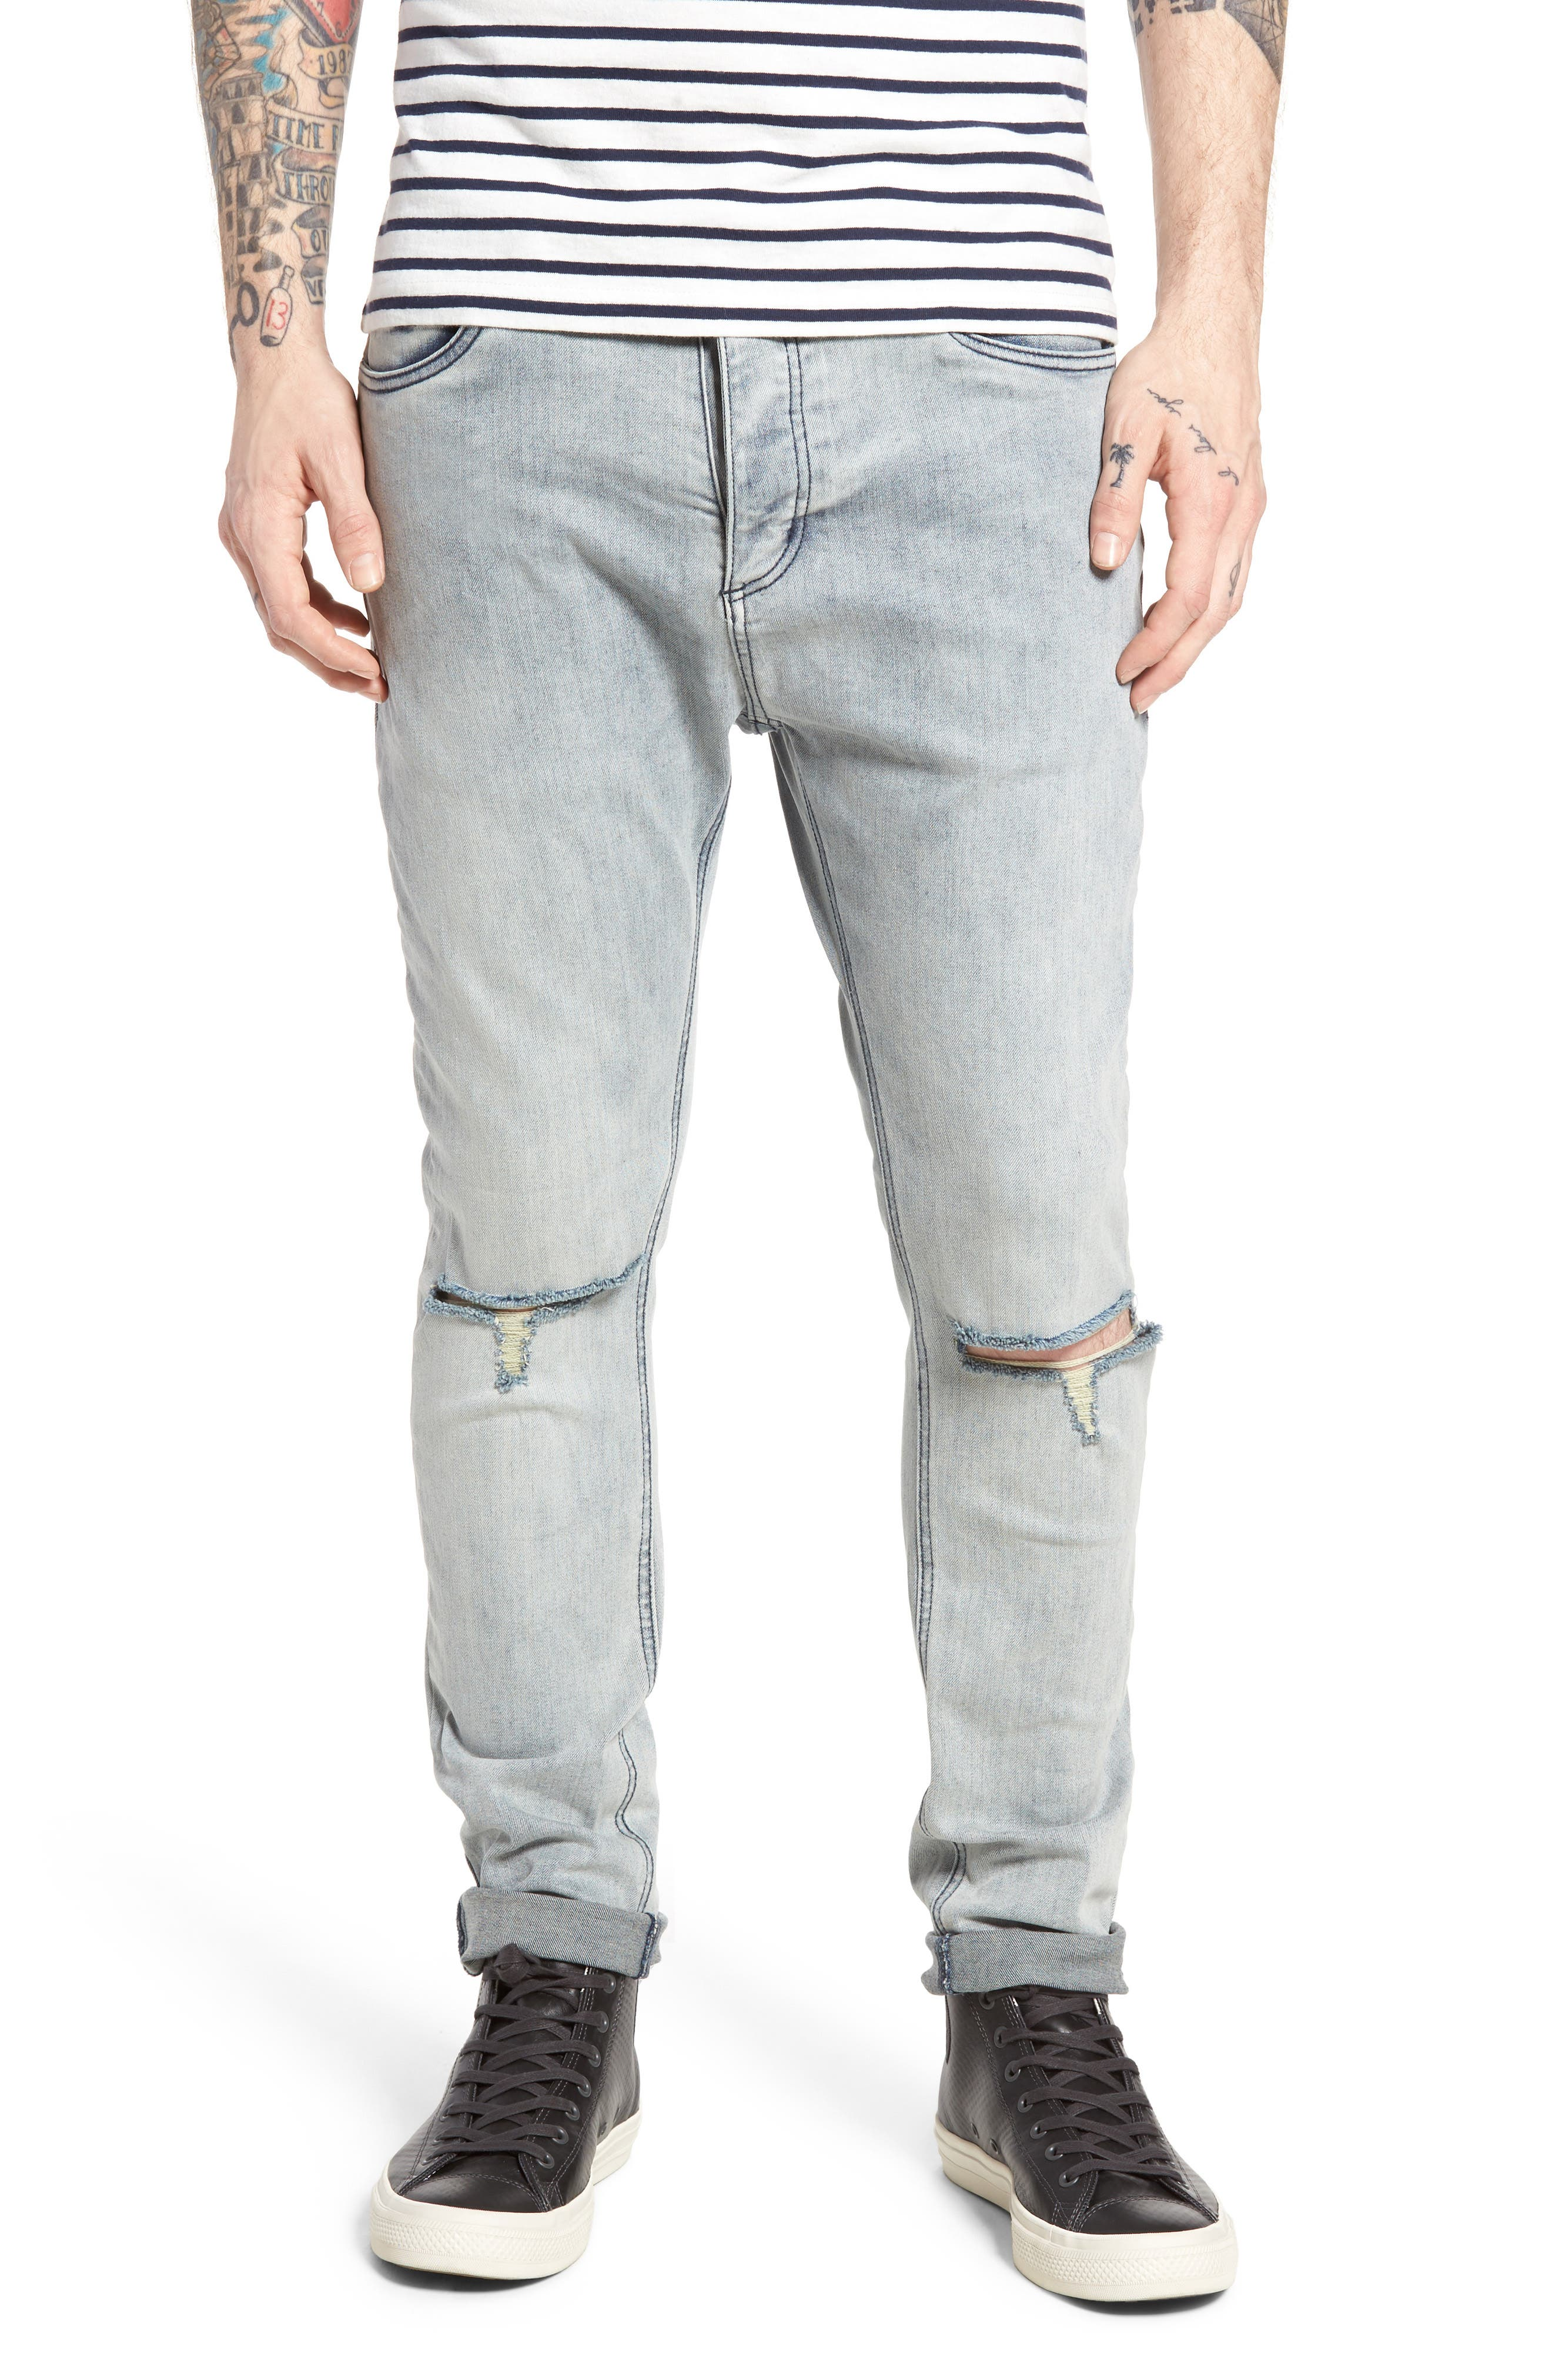 Joe Blow Destroyed Denim Jeans,                         Main,                         color, 459